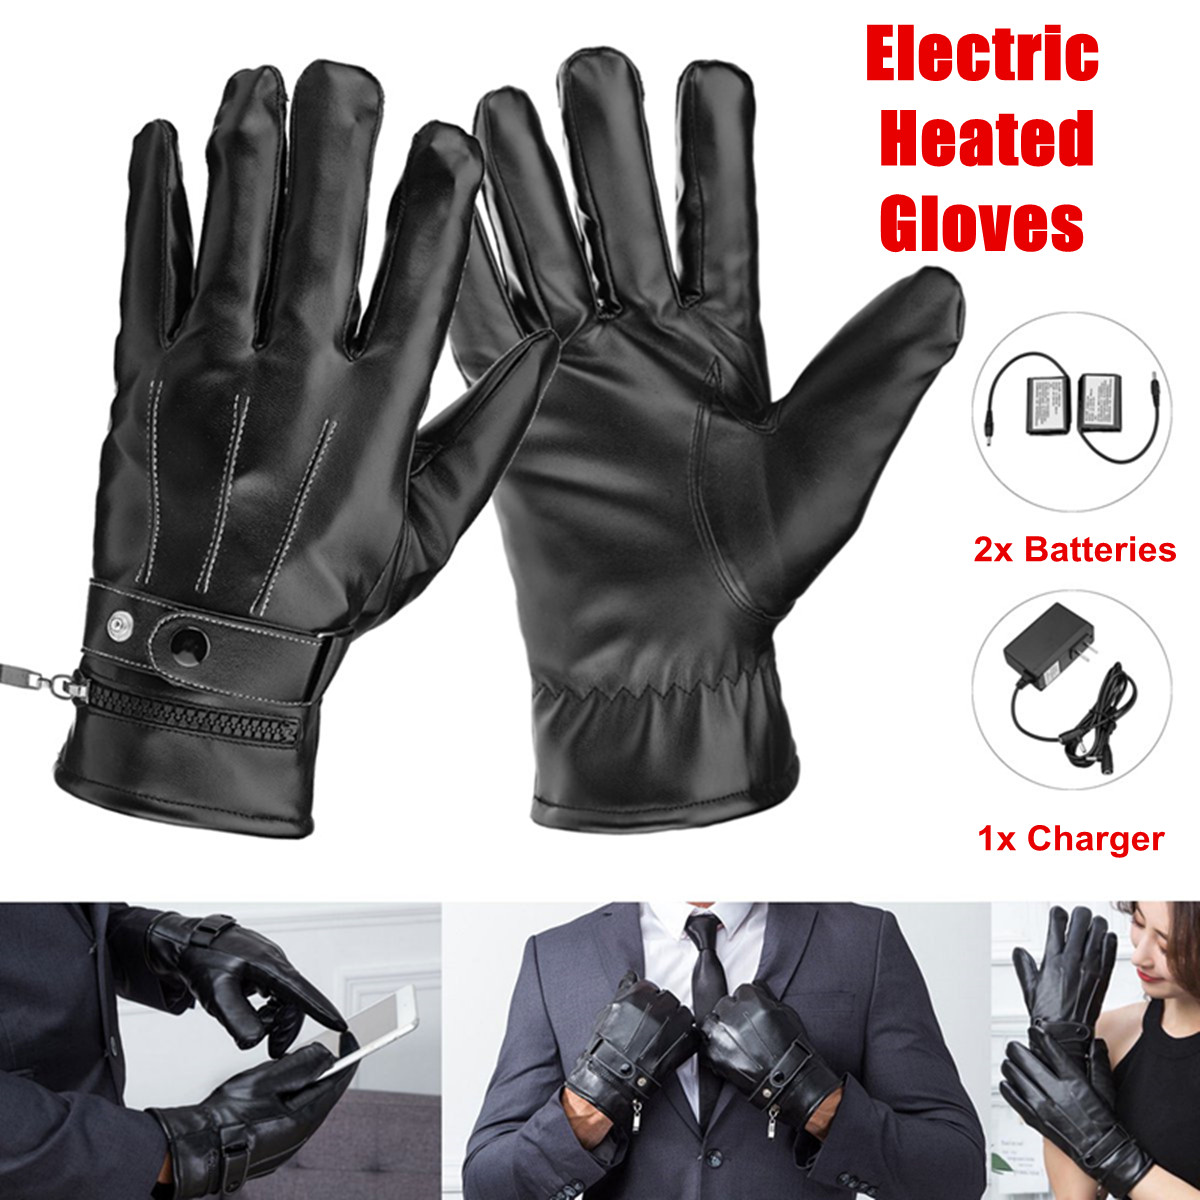 Thermal Electric Heated Gloves Winter Skiing Gloves Unisex Black Bicycle Motorcycle Hands Warmer Rechargeable Battery 1 PairThermal Electric Heated Gloves Winter Skiing Gloves Unisex Black Bicycle Motorcycle Hands Warmer Rechargeable Battery 1 Pair